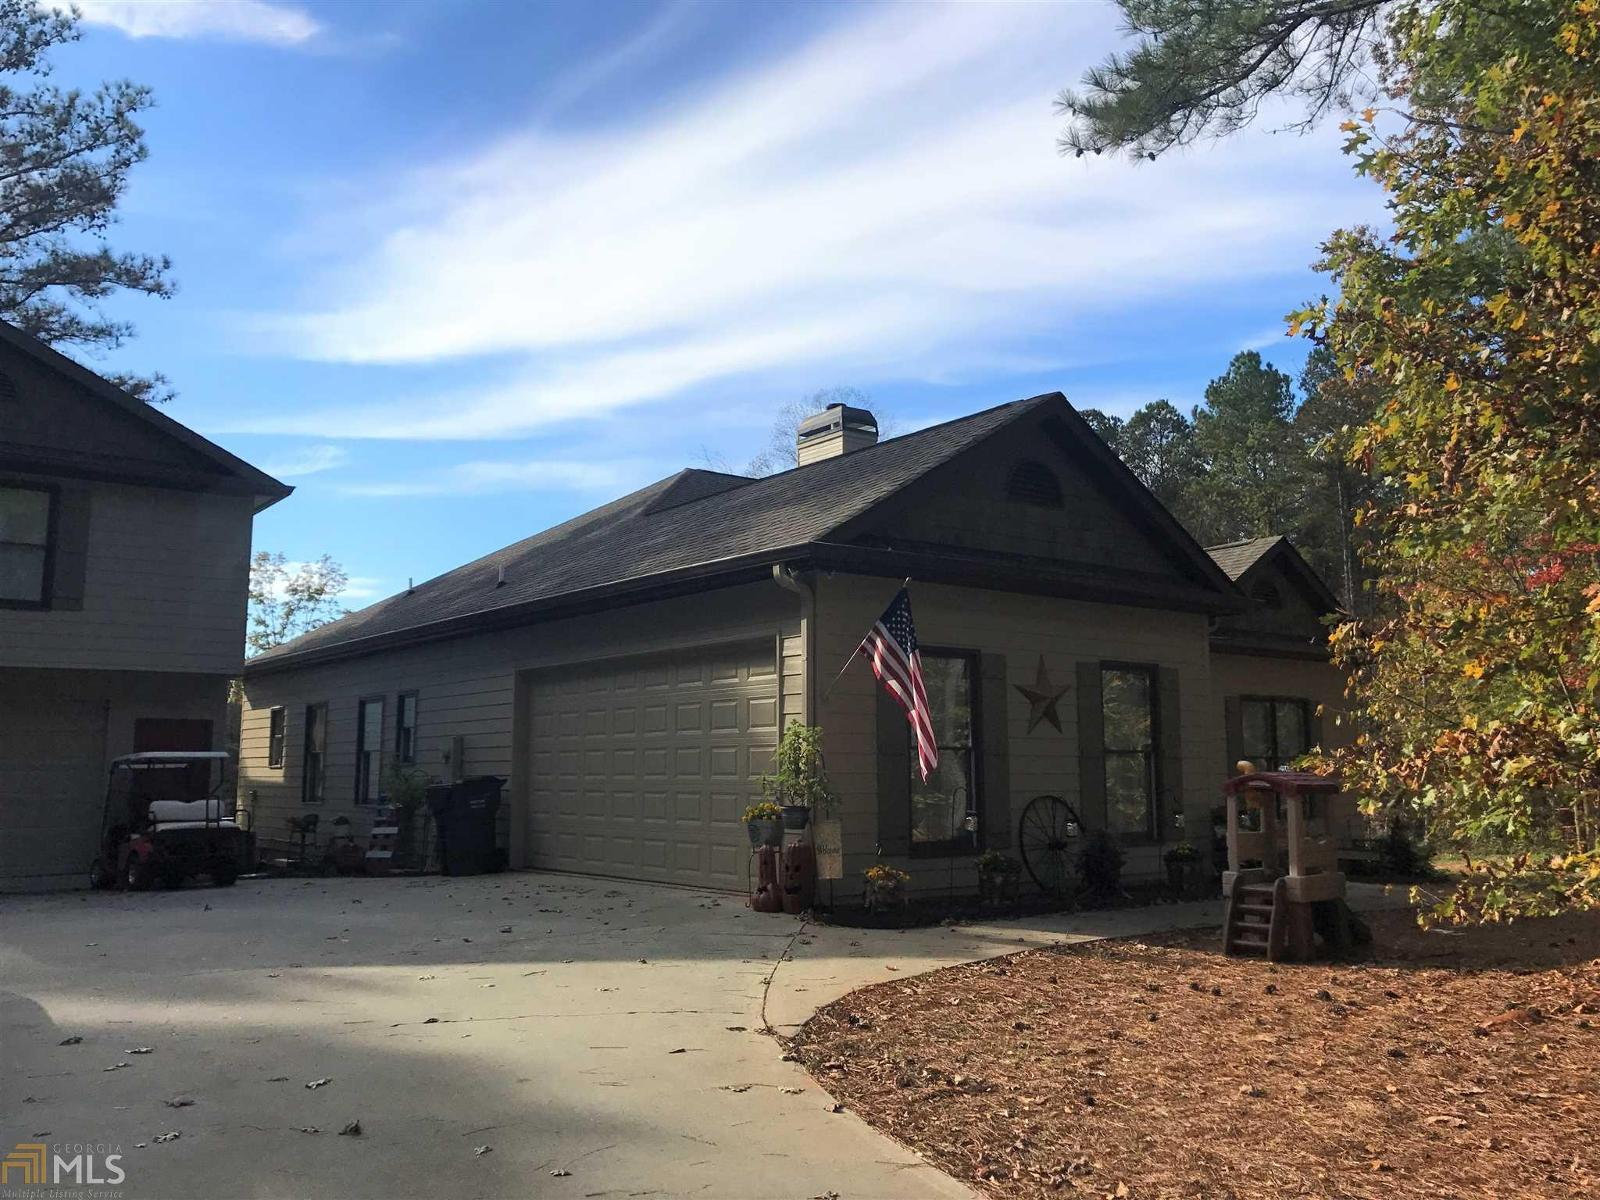 clayton homes tennessee with Homes For Sale In Monroe County Ga on Duck Dynastys Si Robertson Is Proud New Owner Of A Clayton Home together with Polly Adams Daughter Of Douglas Adams moreover Images additionally Triple Wide Mobile Homes With Brick together with Board.